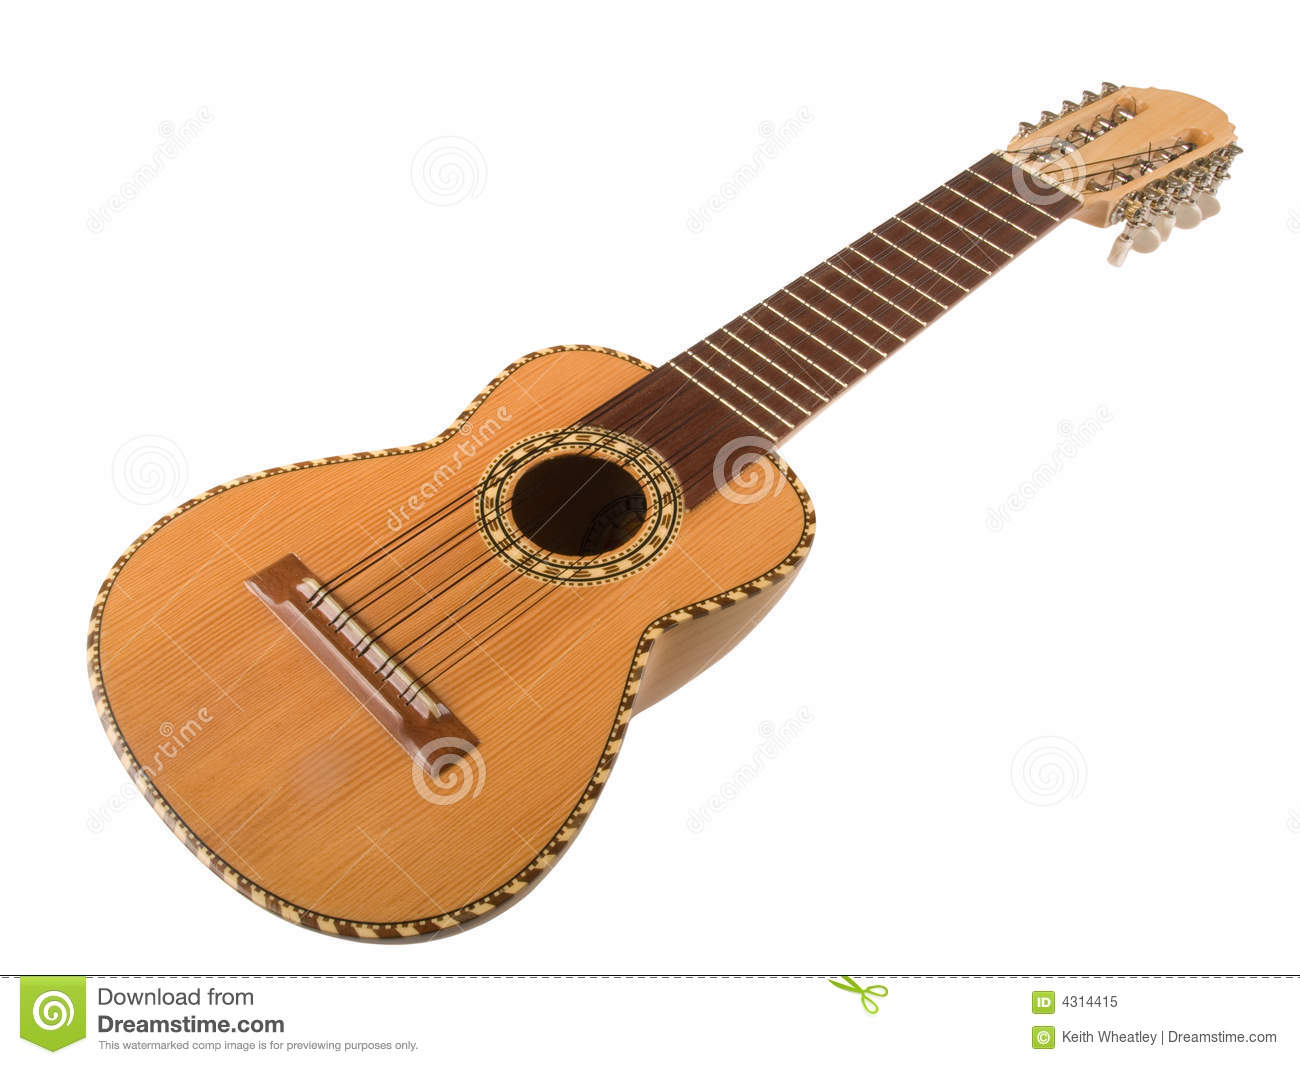 Andean Musical Instrument Stock Photos, Images, & Pictures.